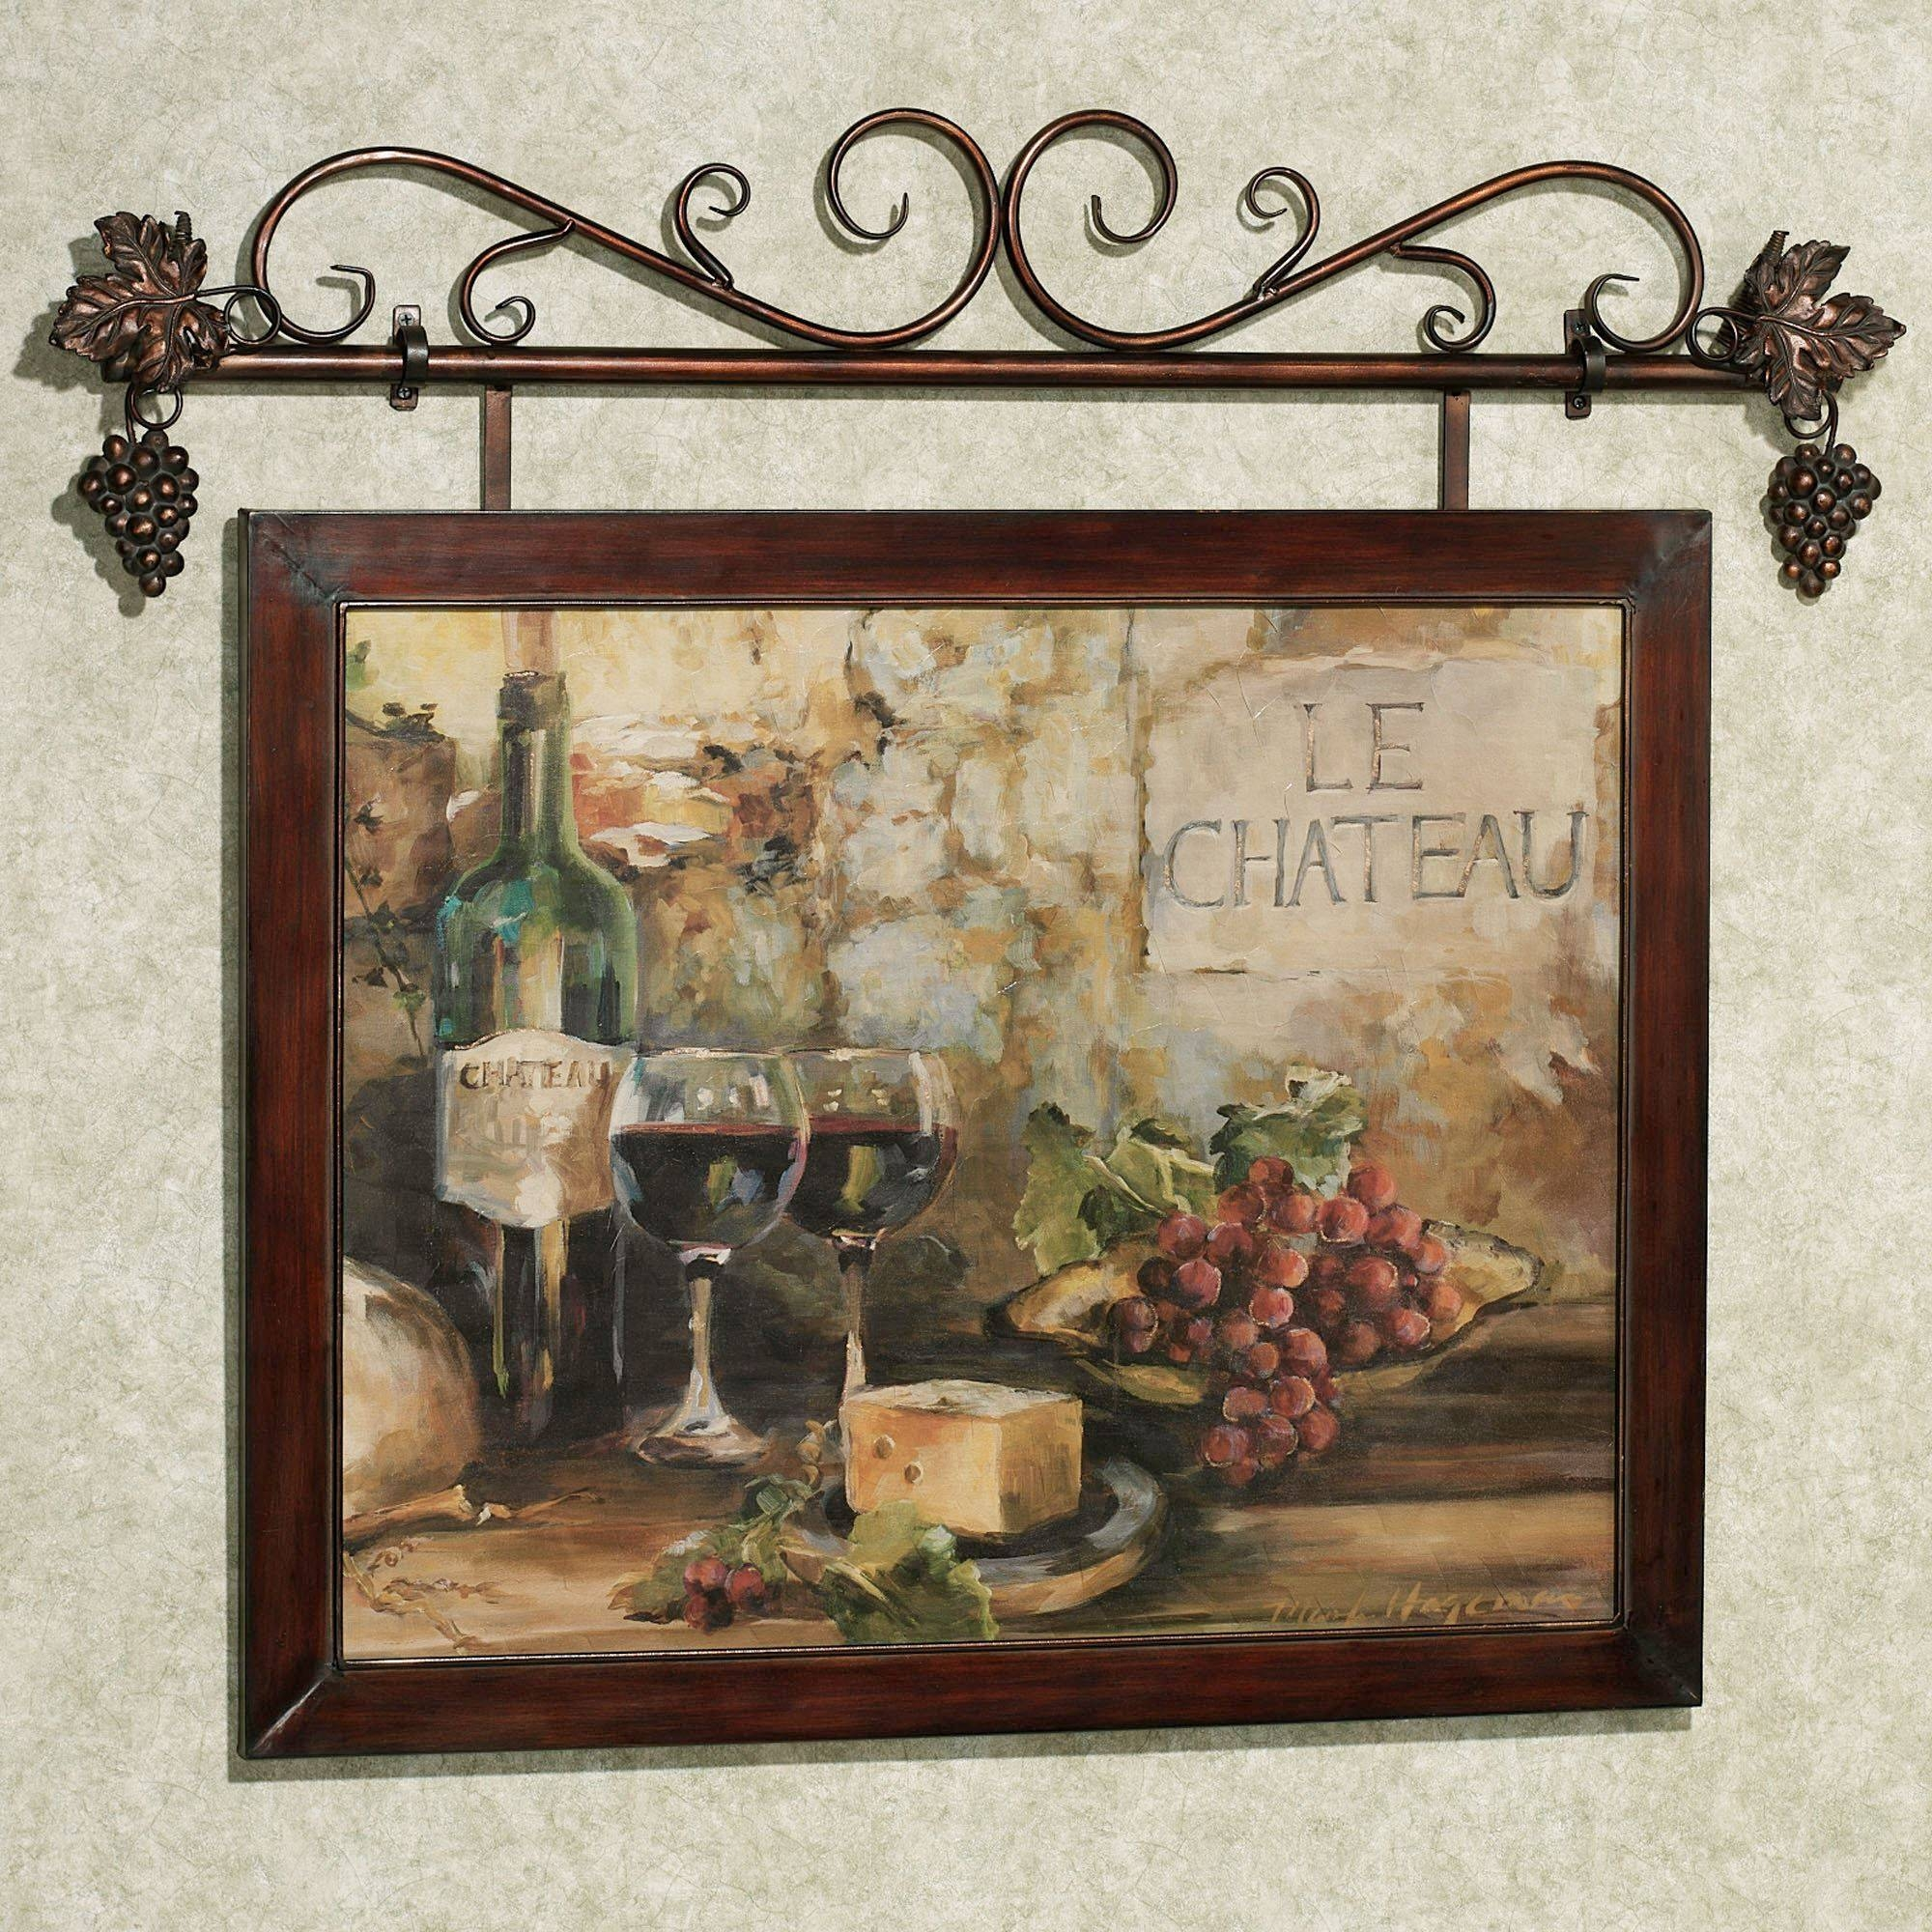 Kitchen Pictures For Wall: 20 Photos Walmart Framed Art